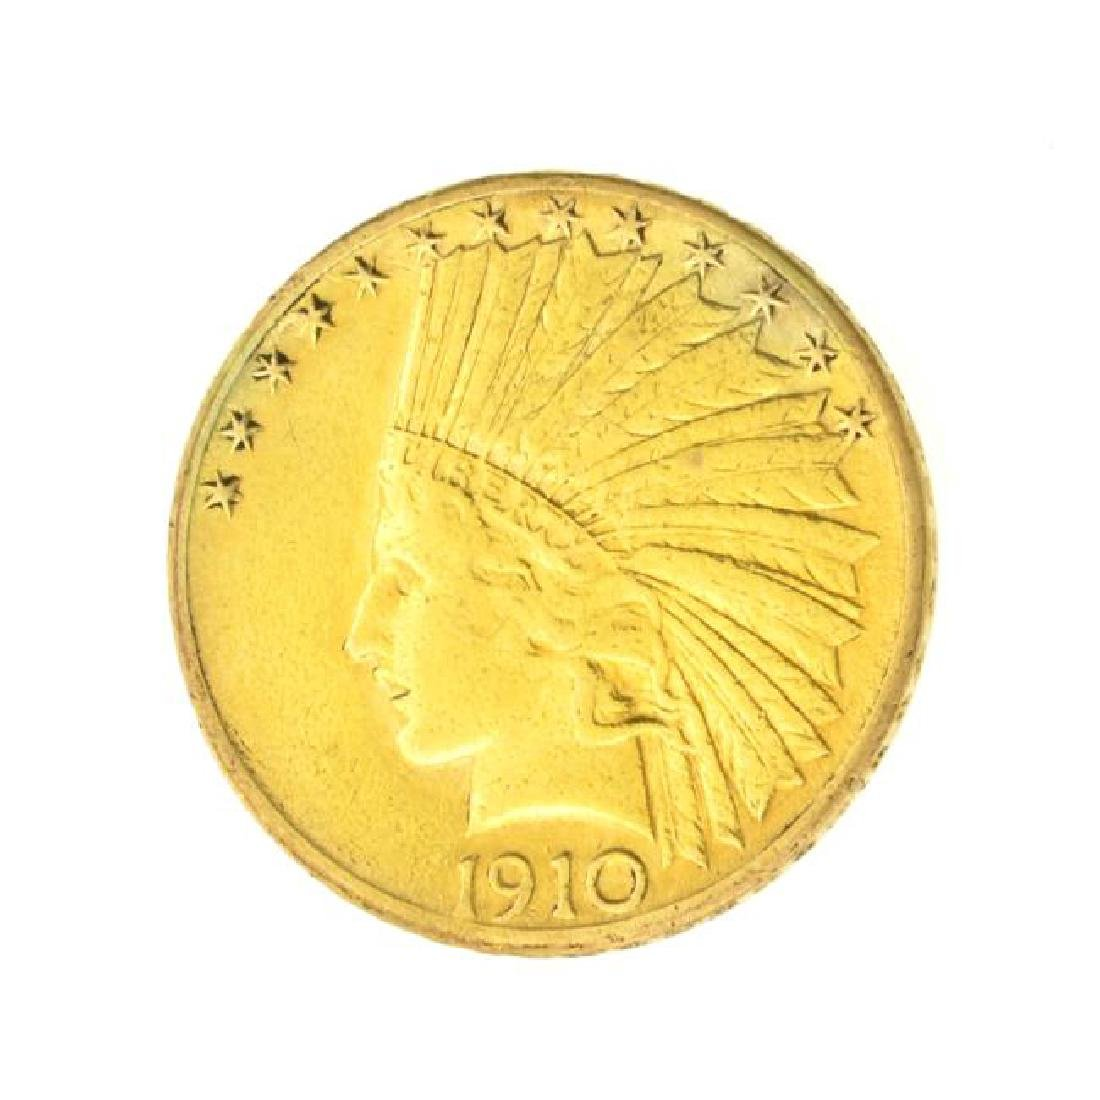 1910-D $10 U.S. Indian Head Gold Coin (JG)